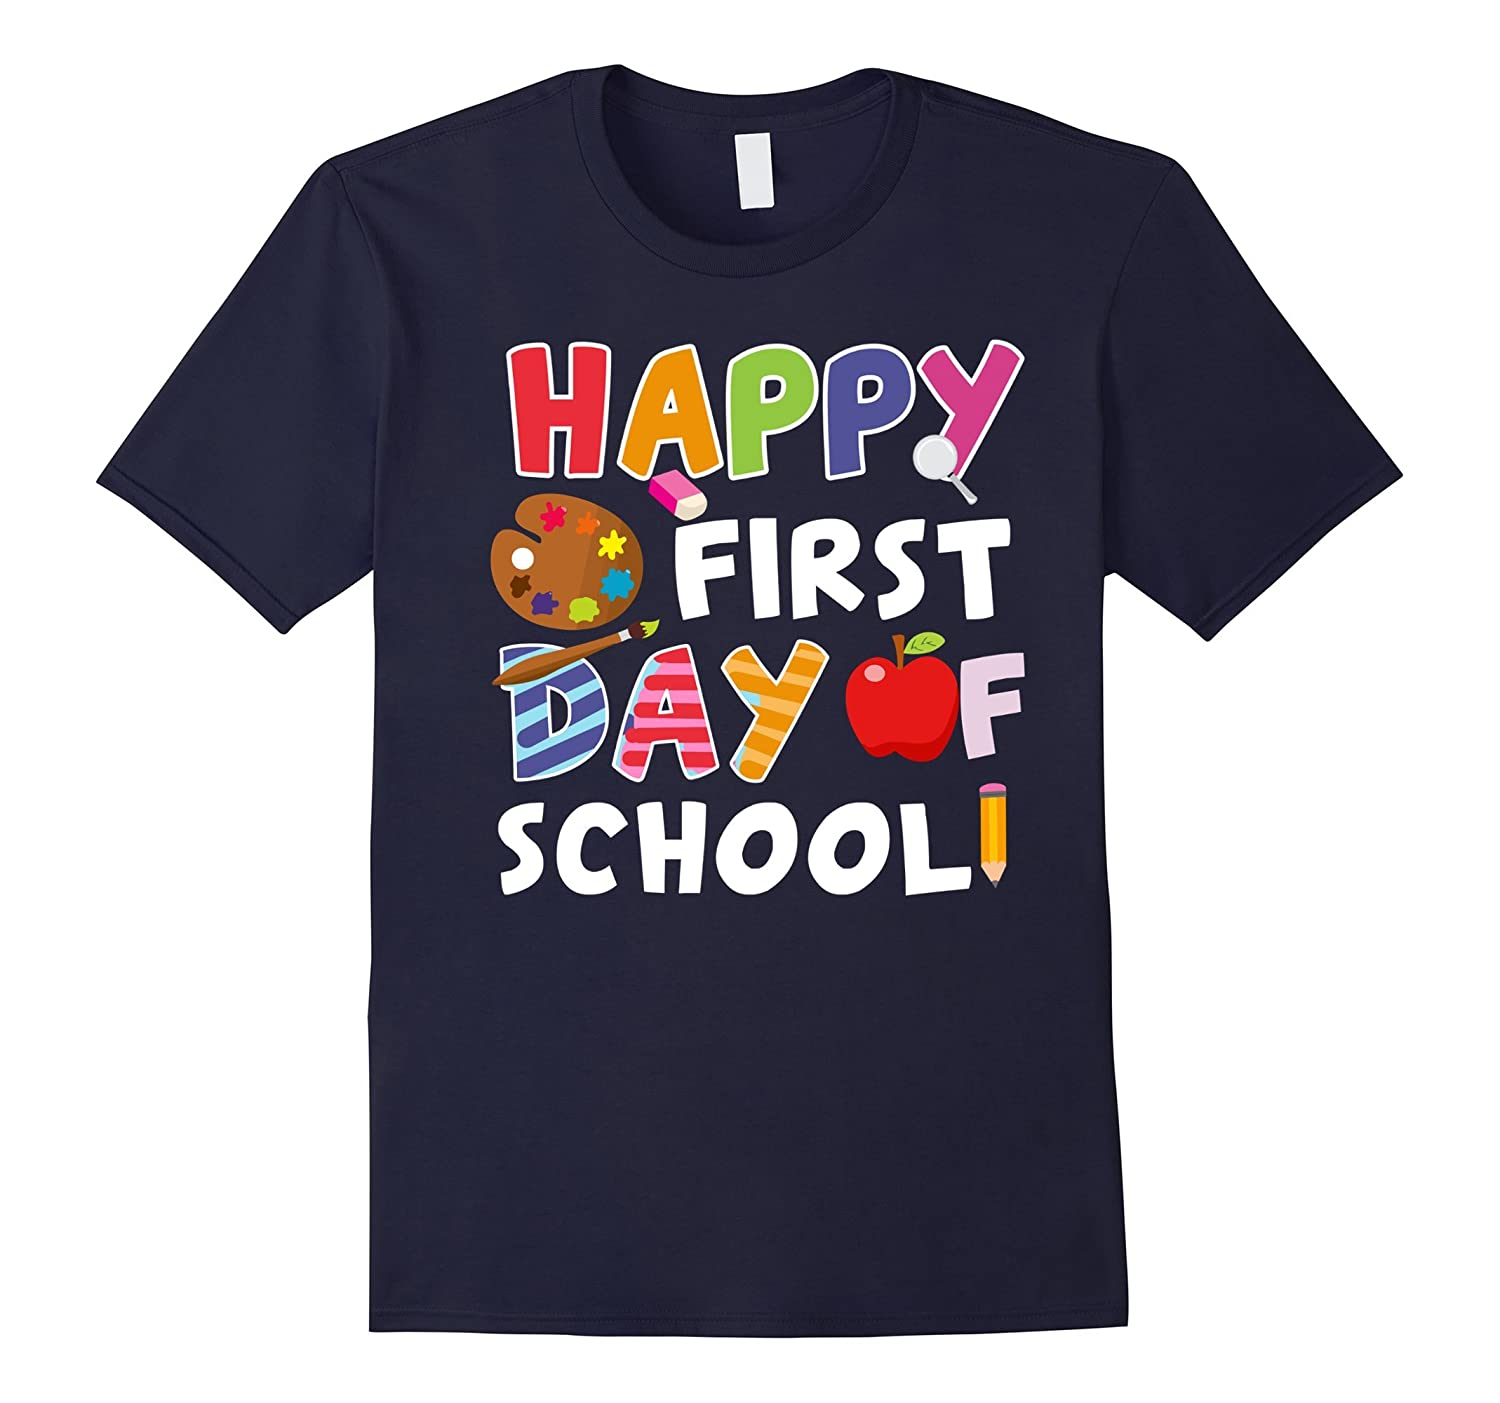 Happy First Day of School Shirt-BN